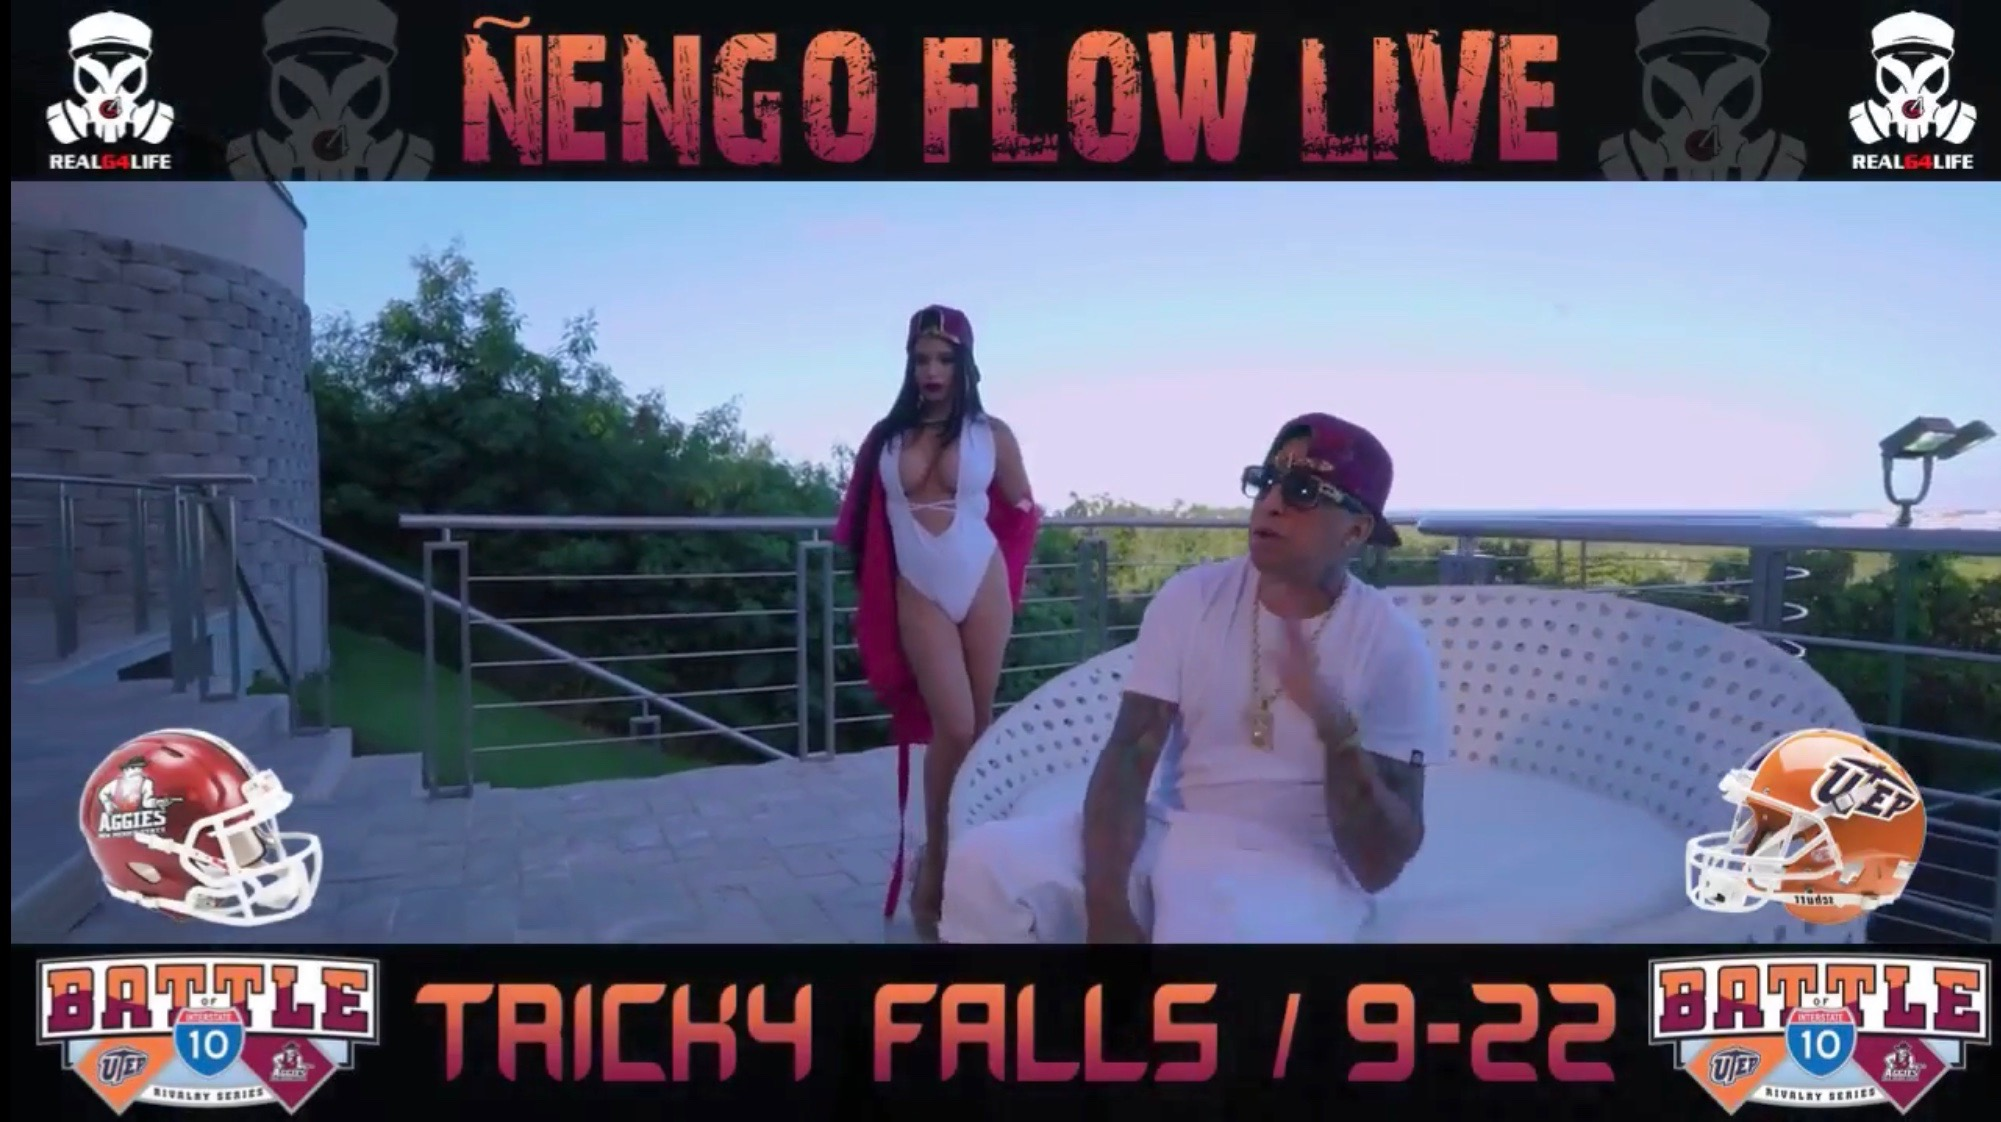 Nengo Flow live in concert at Tricky Falls September 22 9 pm - 2 am.